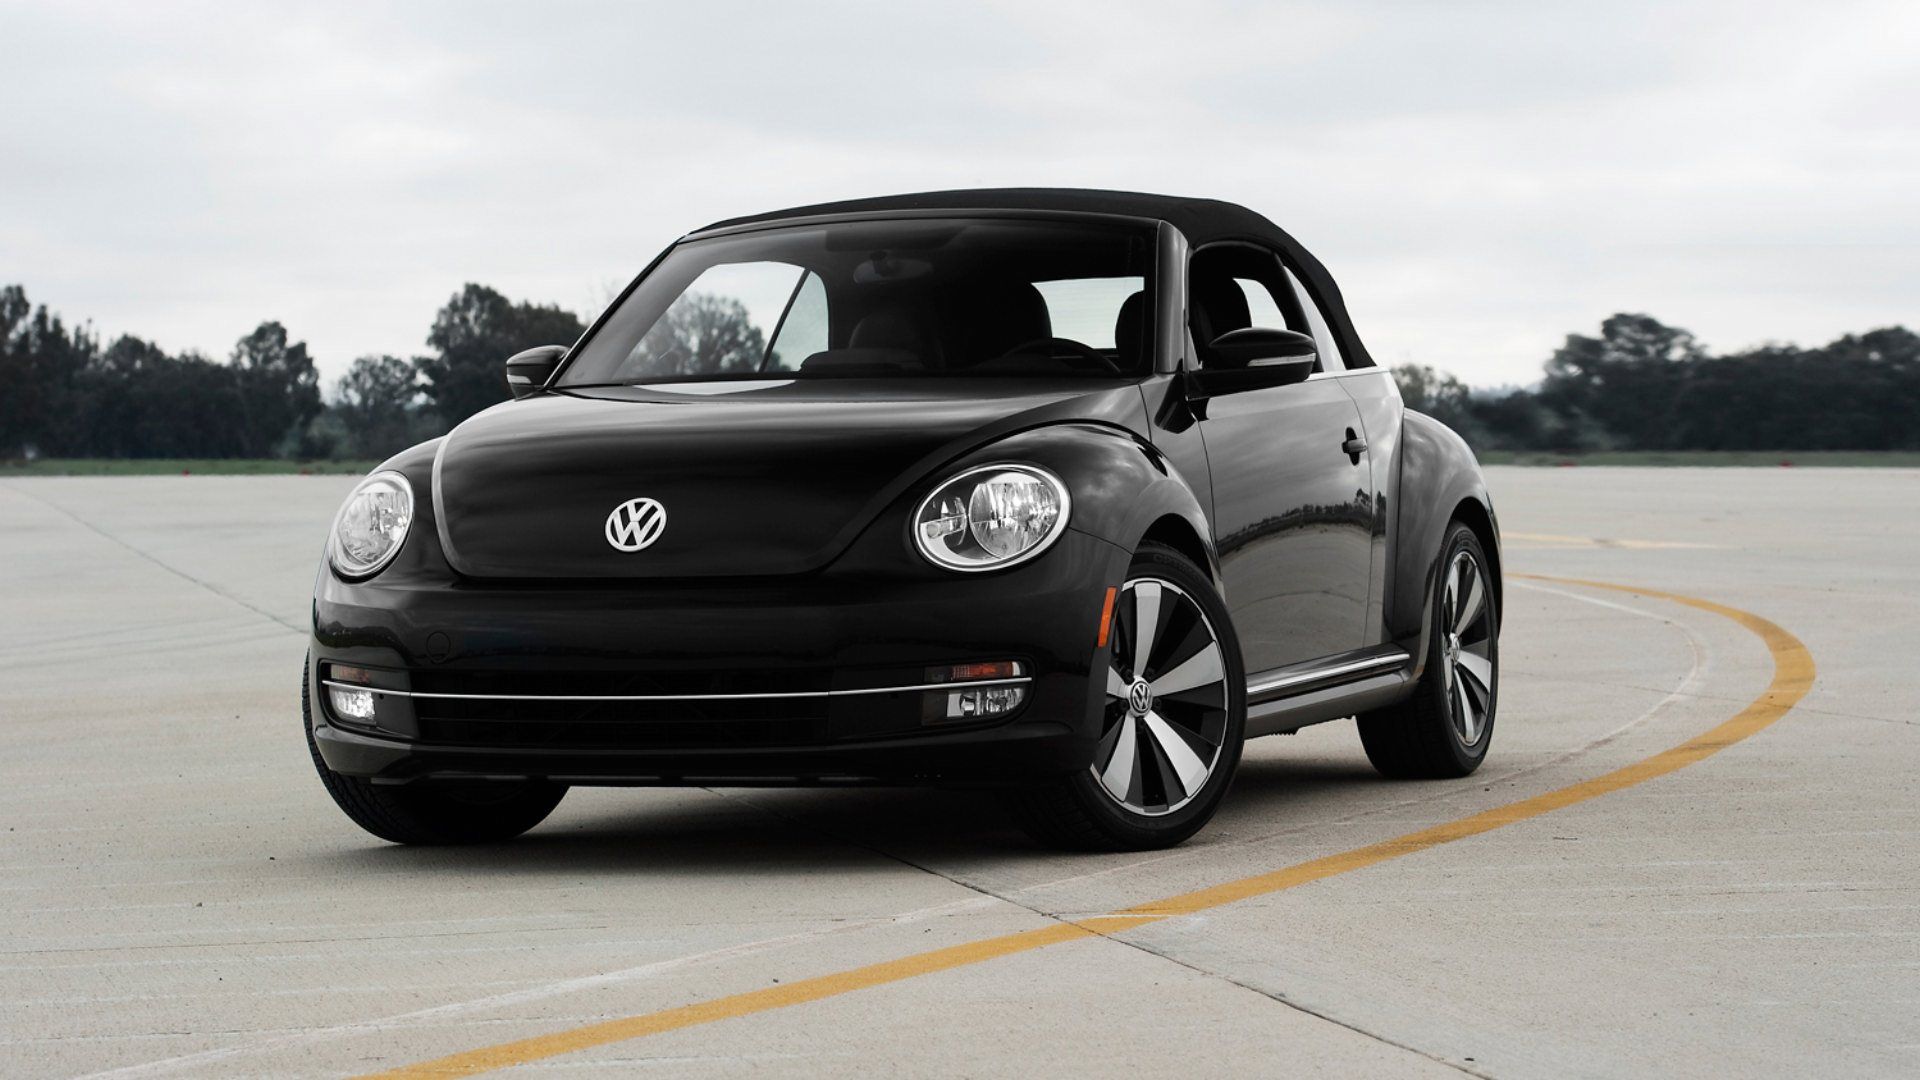 vw beetle wallpaper hd free download wallpaper dawallpaperz. Black Bedroom Furniture Sets. Home Design Ideas